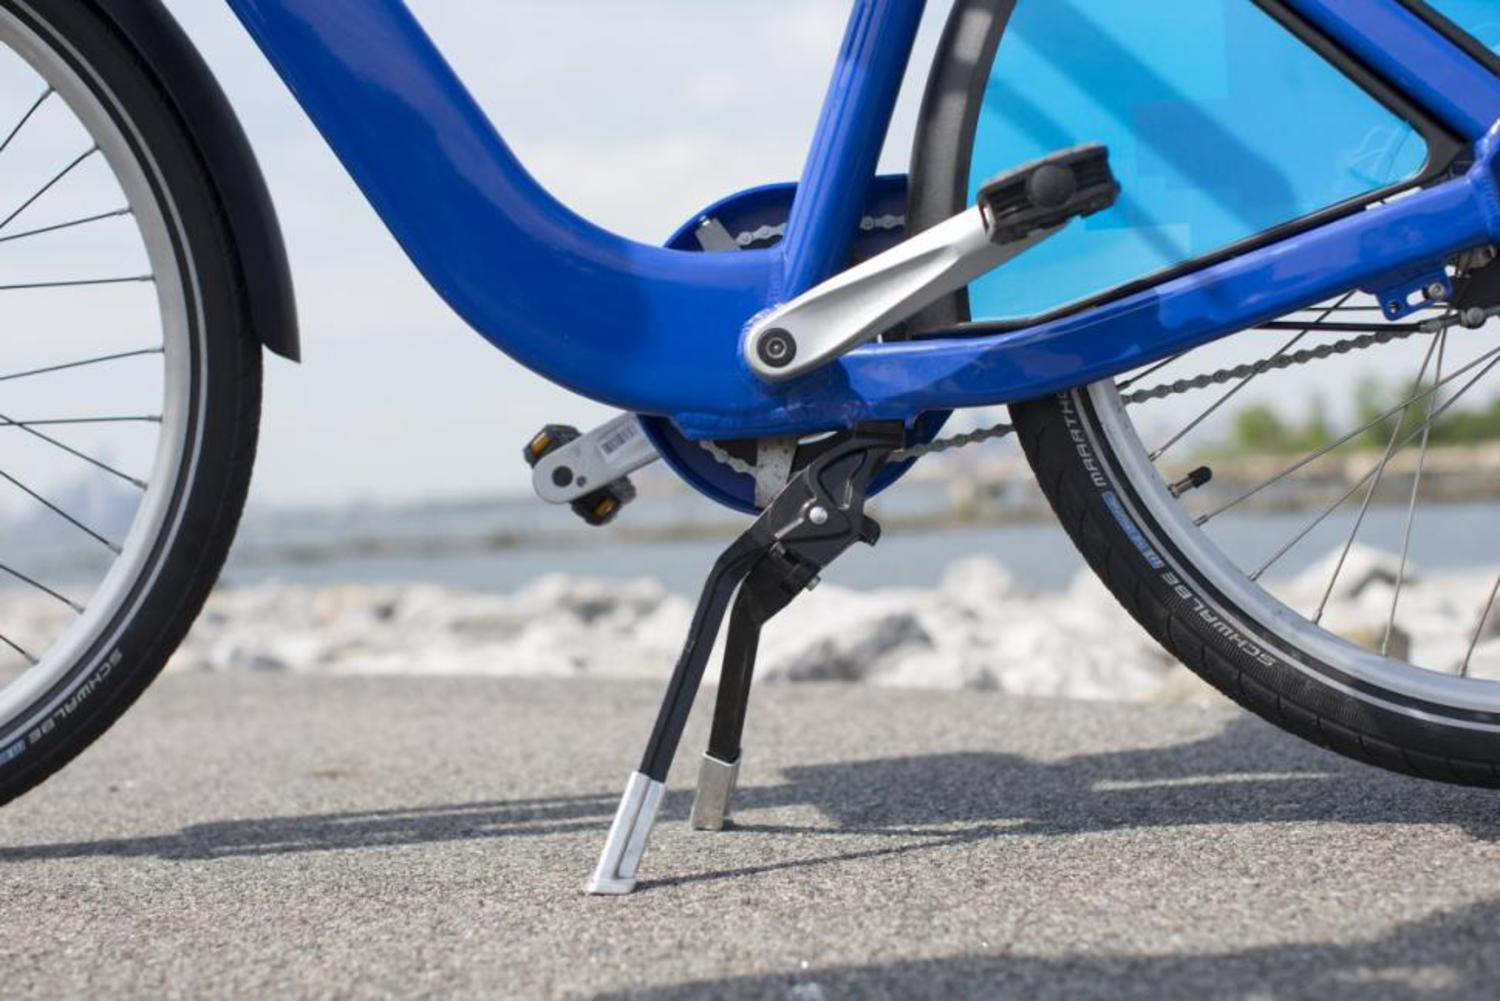 Other improvements include a new gear system — the old one was prone to breaking down, which left fewer bikes on the road because of repairs — and a European-style kick stand, which is more steady.